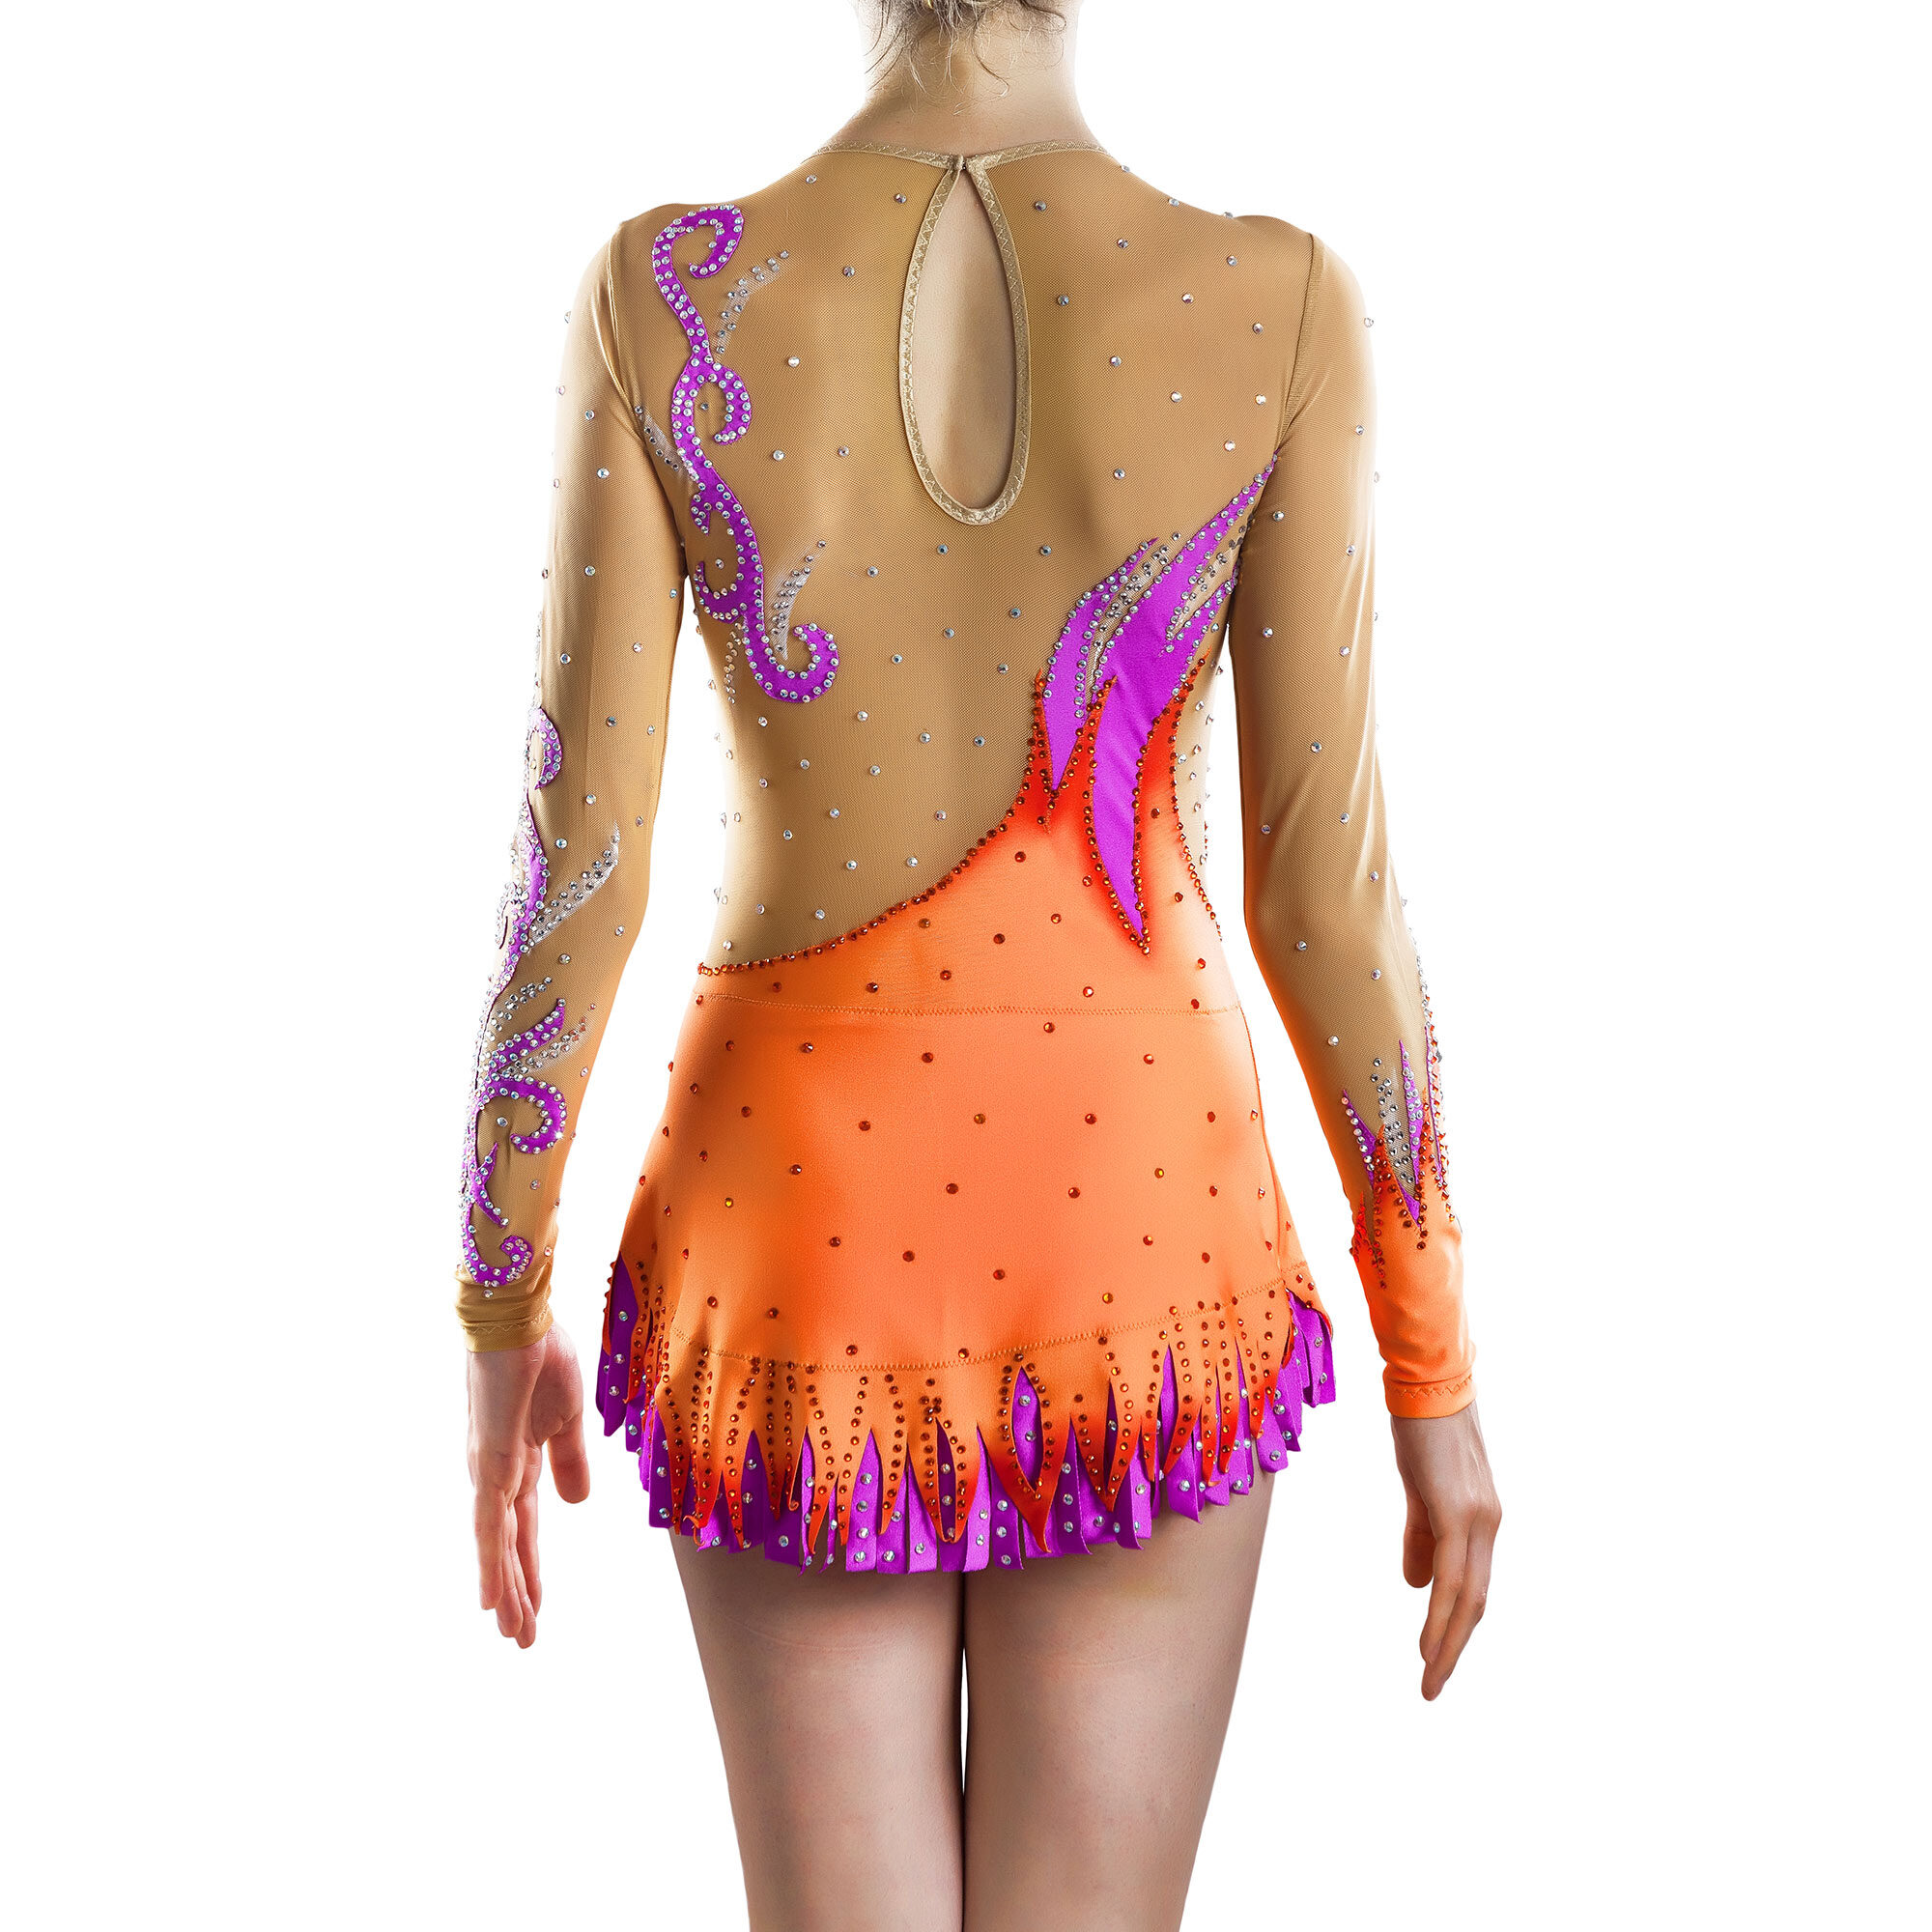 Backside of Orange, purple, mesh Rhythmic Gymnastics Competition Leotard № 184 for Competitions with double skirt & applications